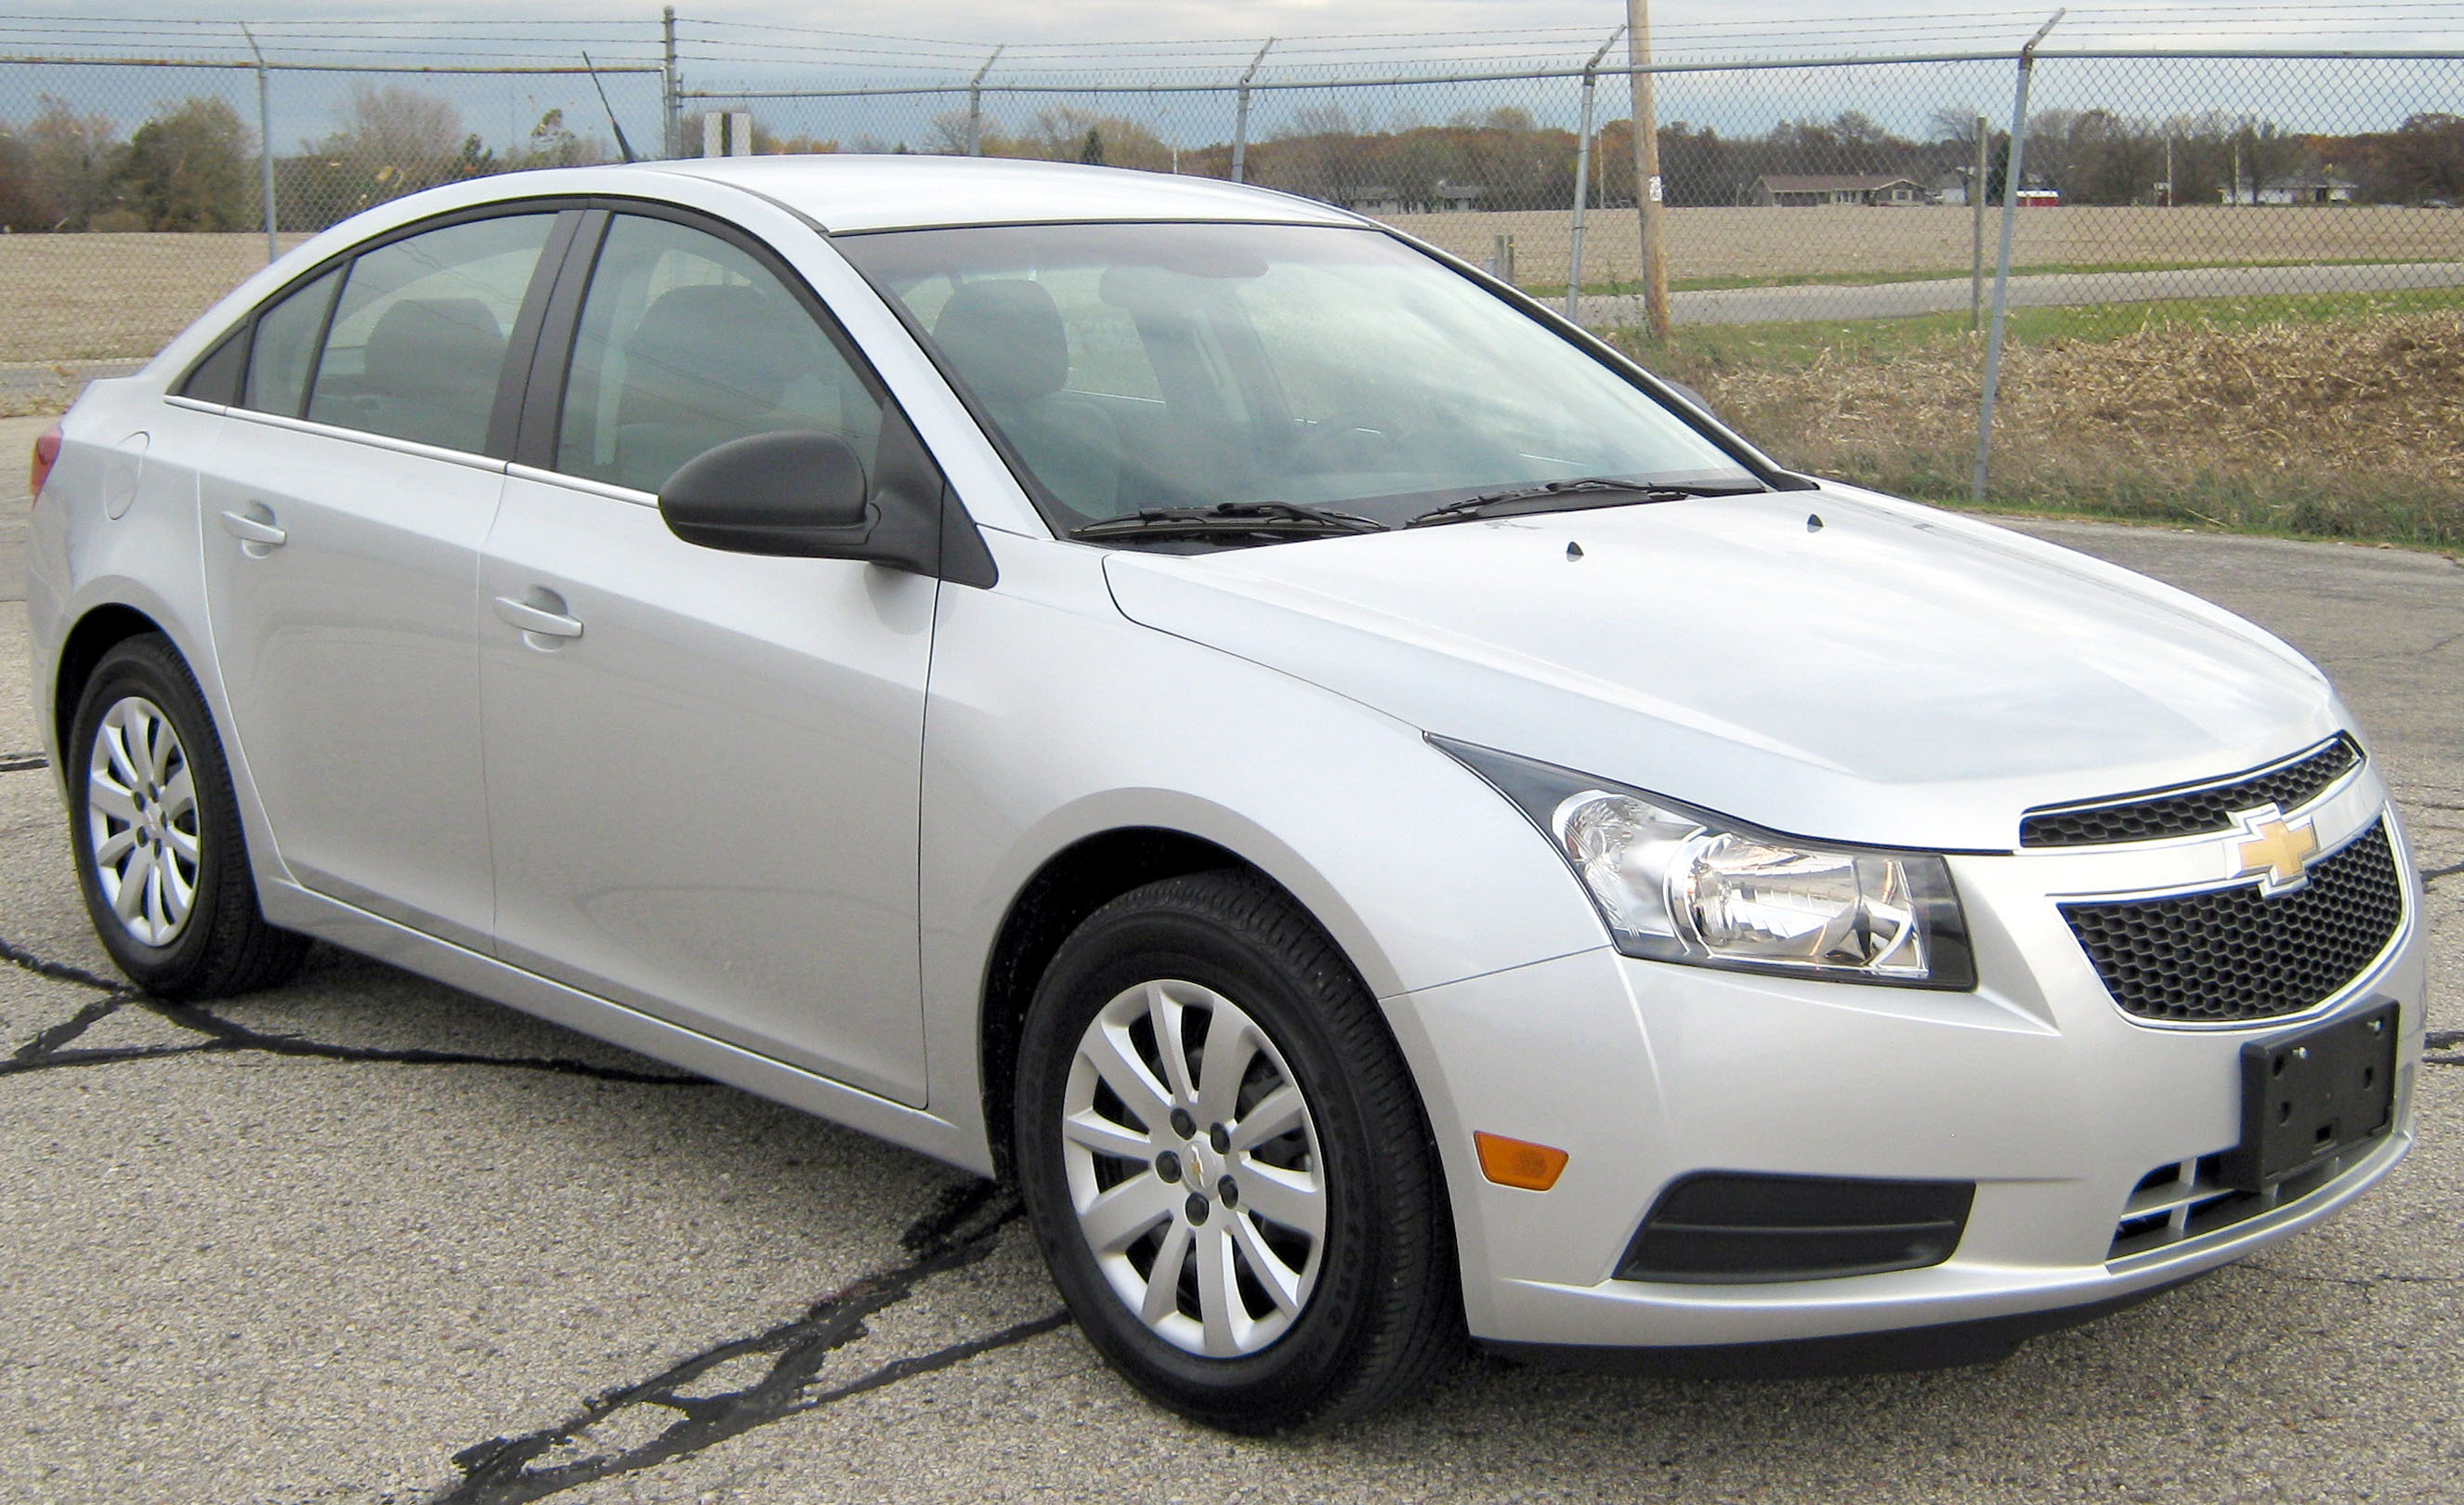 Chevrolet Cruze Pictures Cars Models 2016 Cars 2017